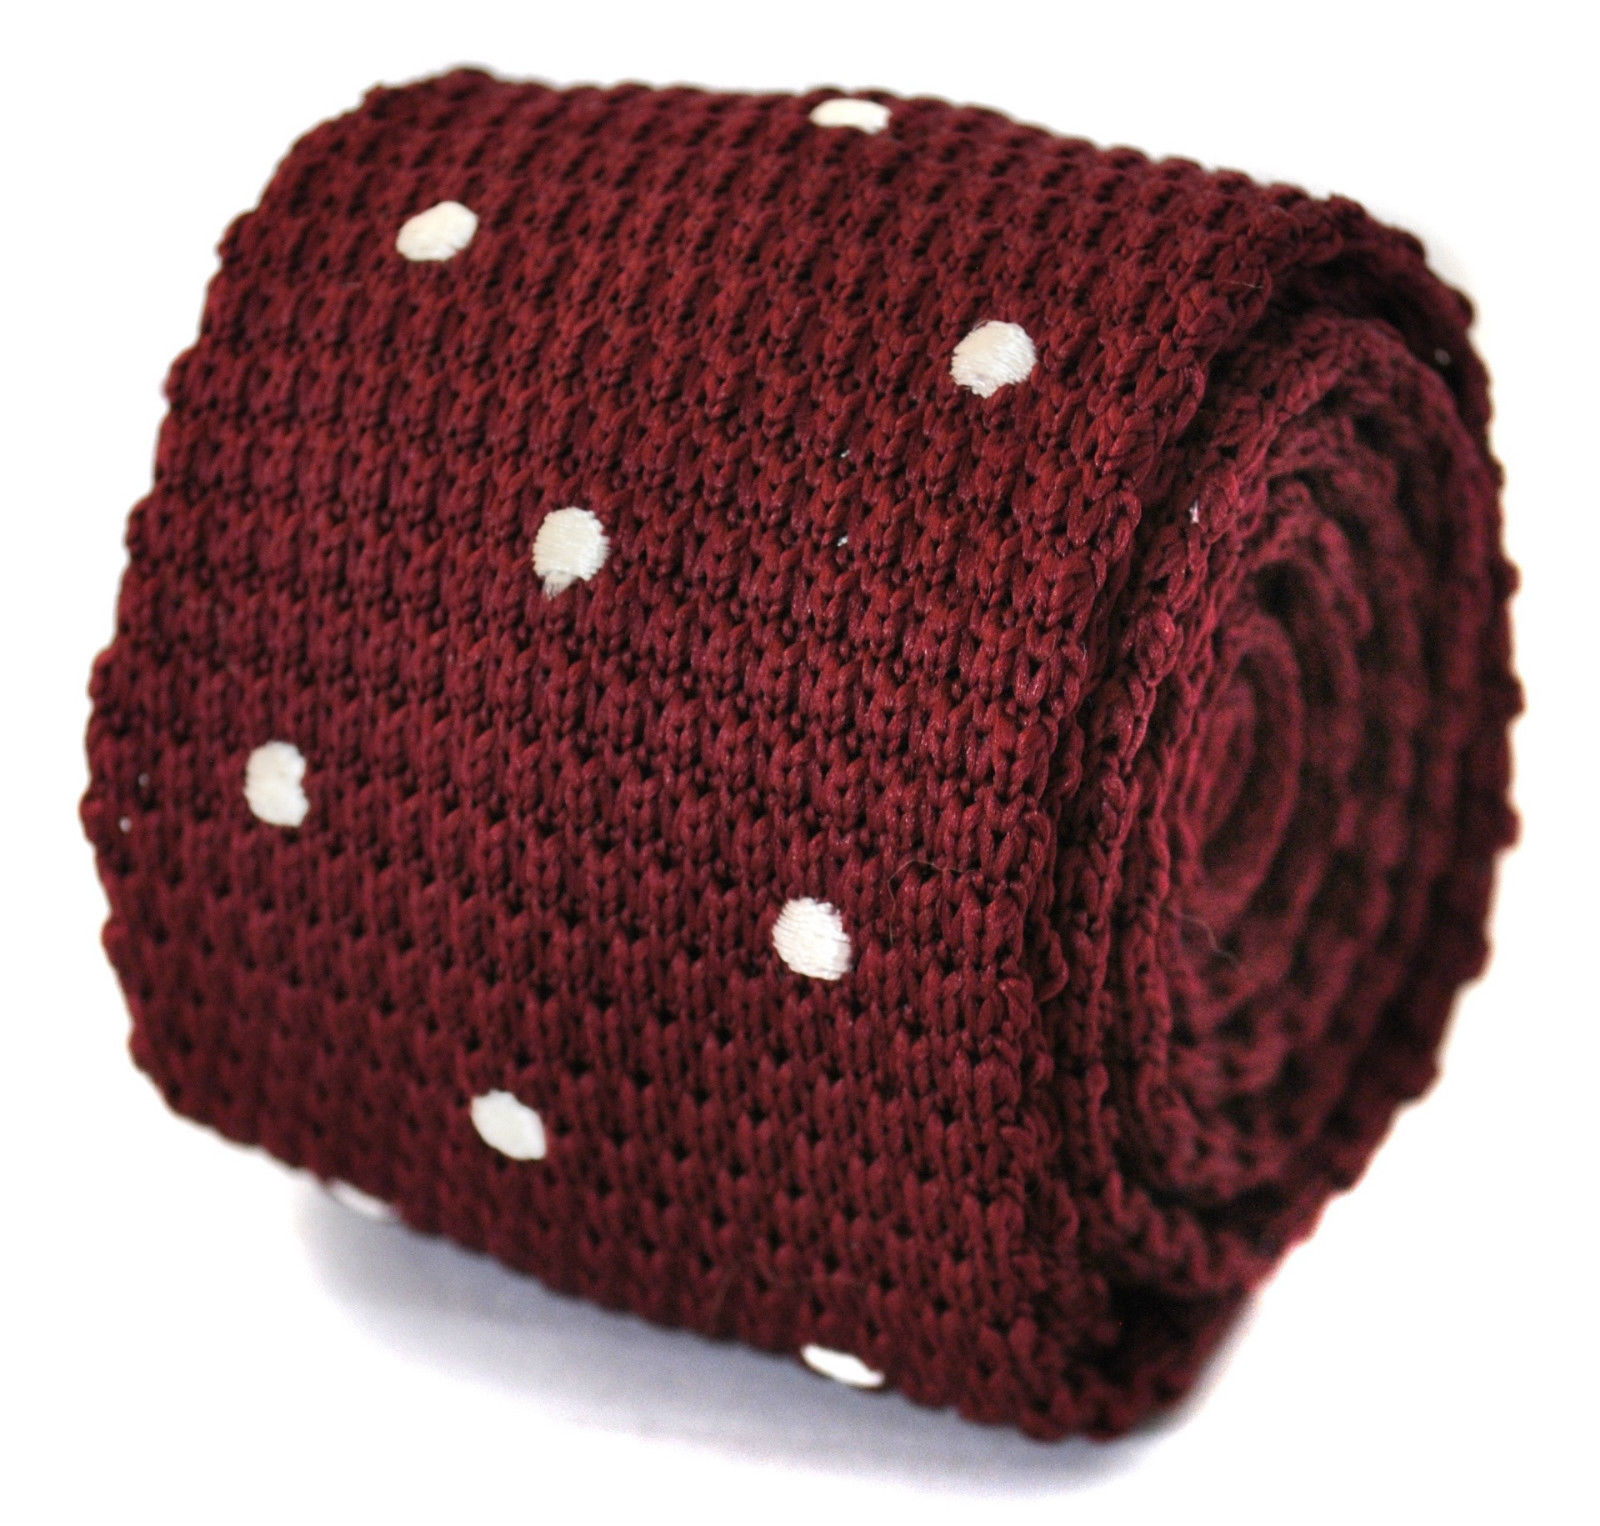 Frederick Thomas knitted maroon and white spotted tie